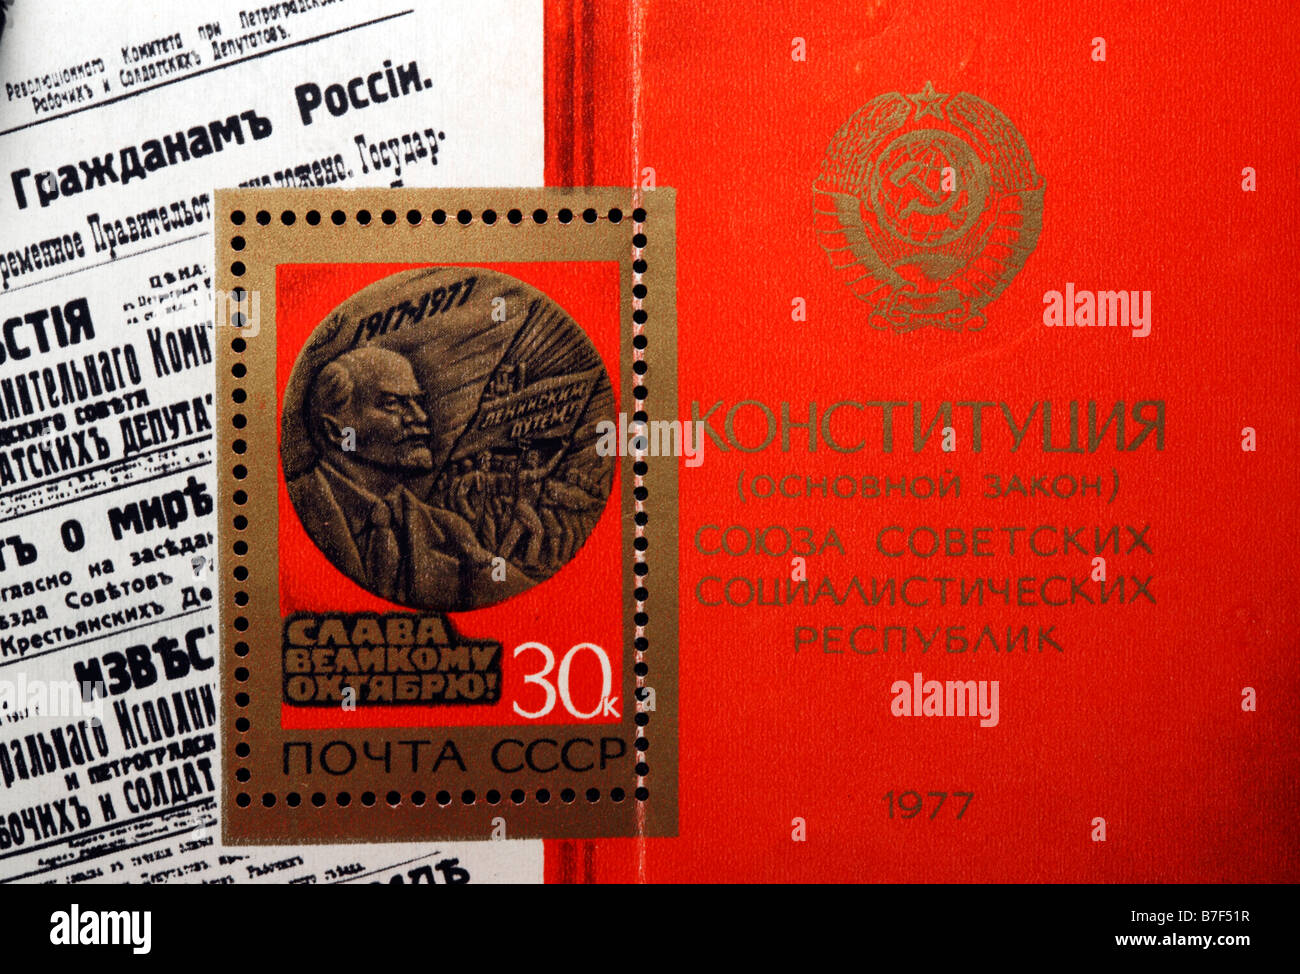 Constitution of Soviet Union, postage stamp, USSR, 1977 - Stock Image